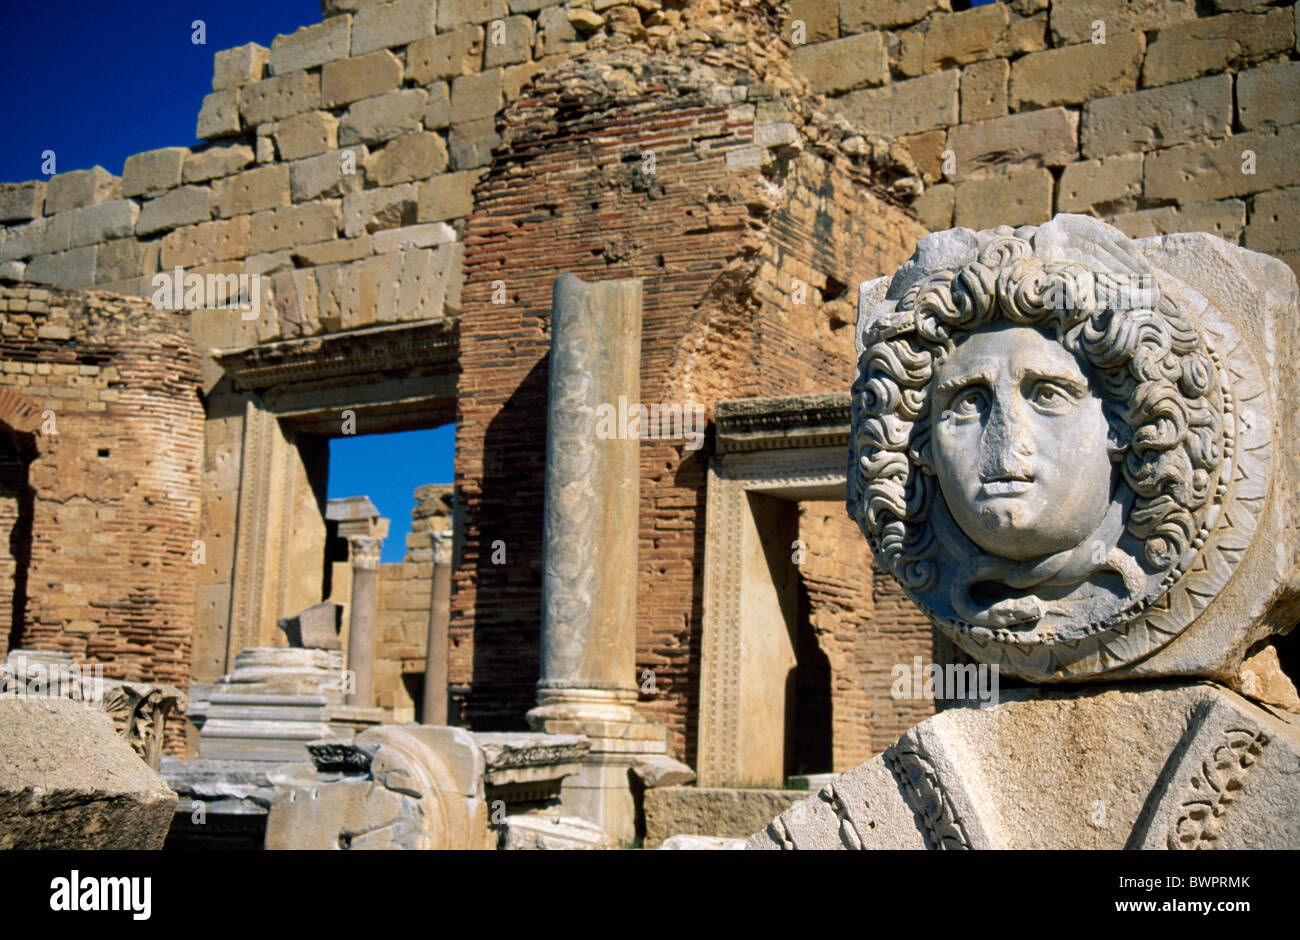 Libya Leptis Magna Ancient roman city Africa North Africa Mediterranean Sea historic history historical ruin - Stock Image